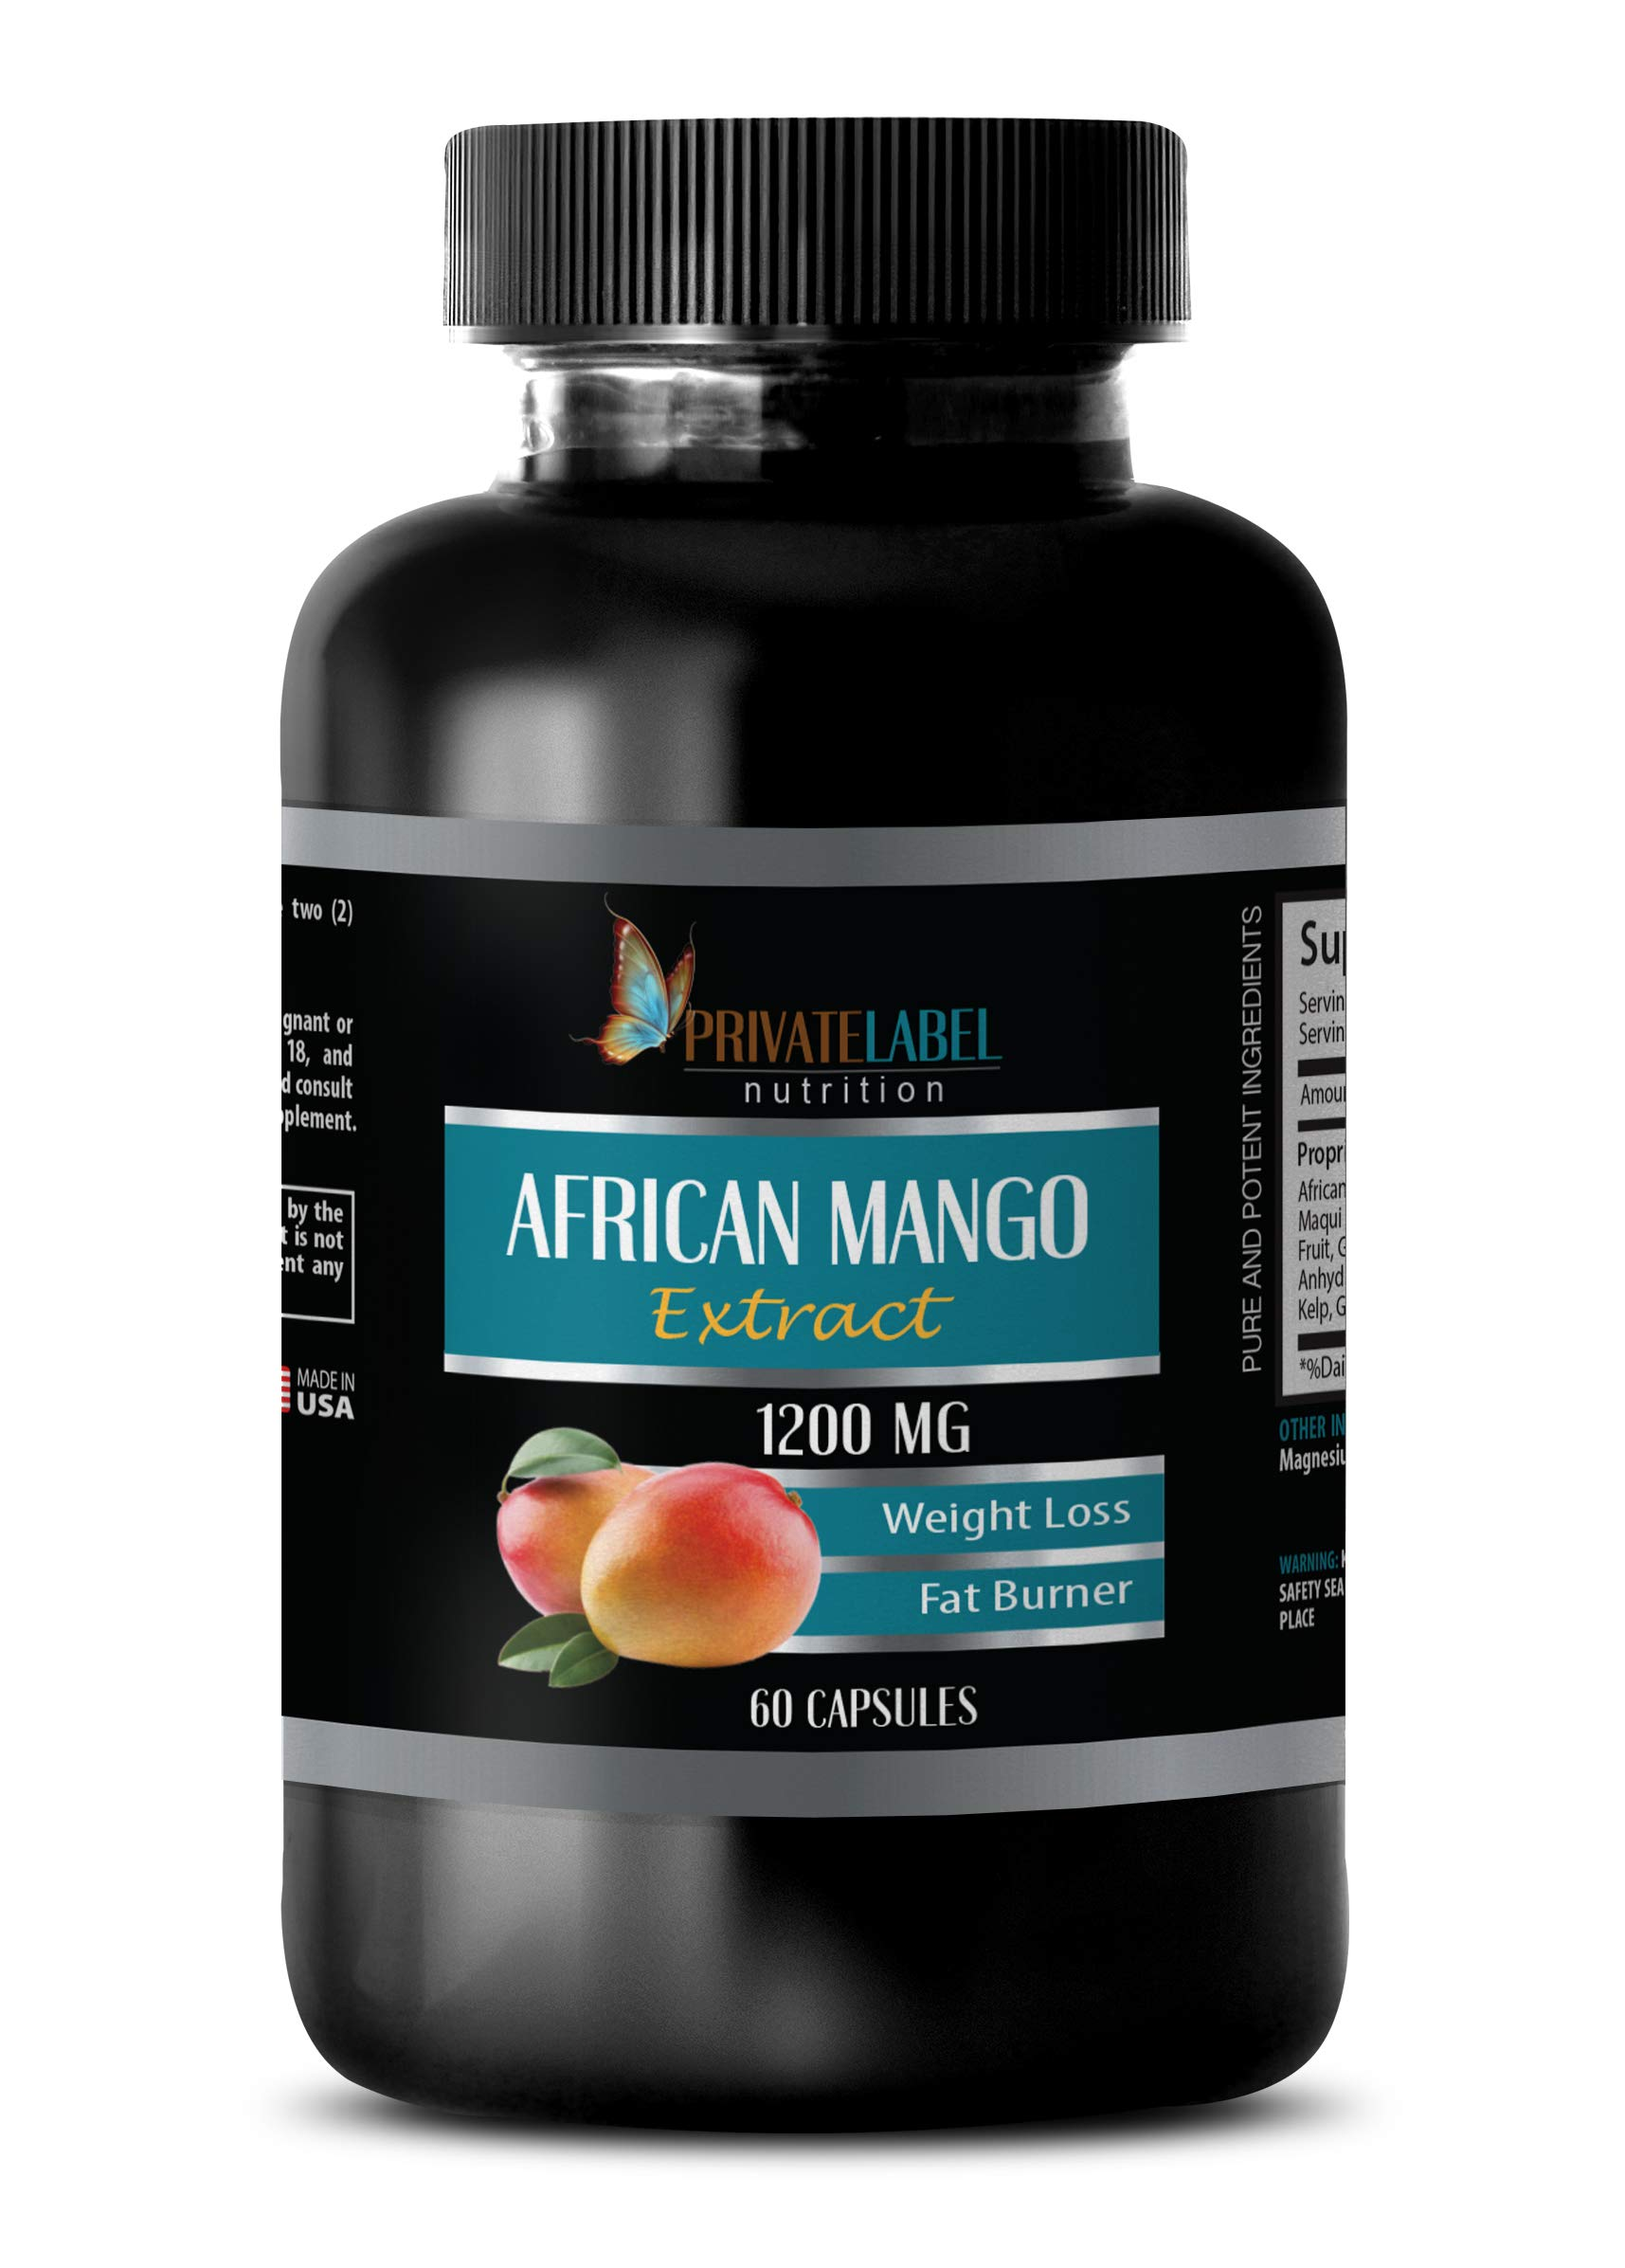 Fat Burner Energy Booster for Men - African Mango Extract 1200 MG - African Mango Fruit - 1 Bottle (60 Capsules)